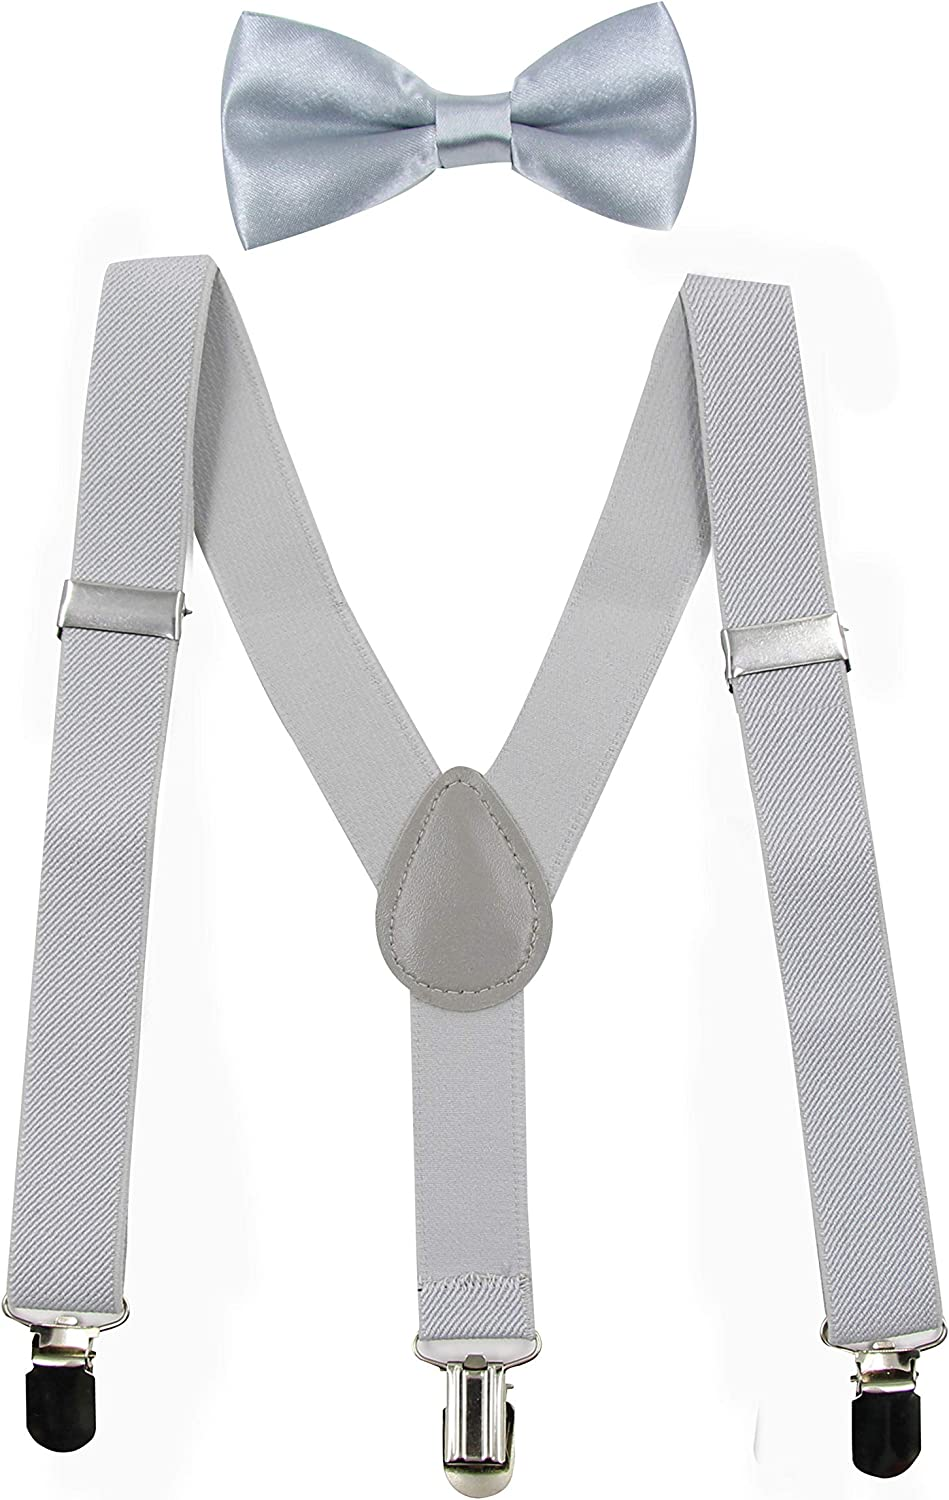 Toddlers Kids Suspenders & Bow Tie Set,Adjustable Y Back Suspender with Strong Clips Elastic Accessory for 1-13 Years